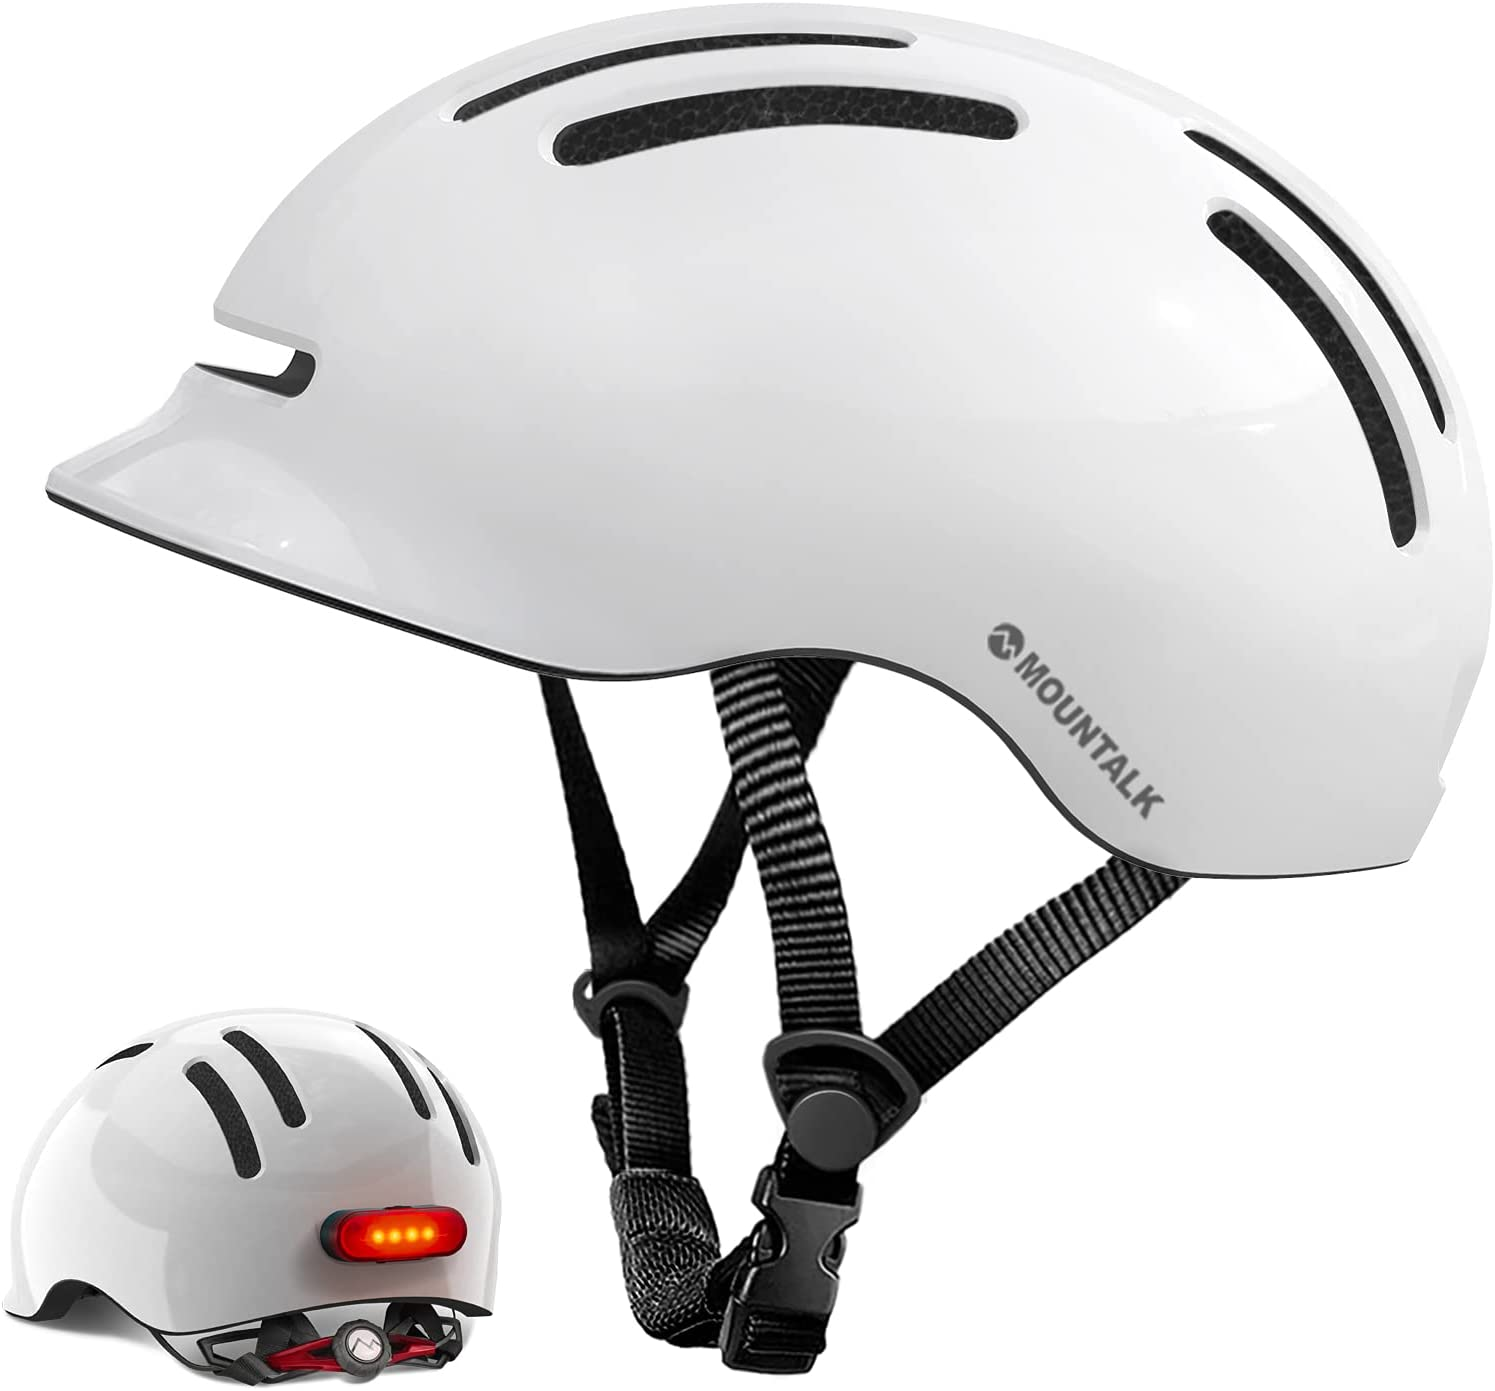 Mountalk Adult Bike Helmet with Light Cool Max 87% OFF H Mens Shipping included Women Bicycle